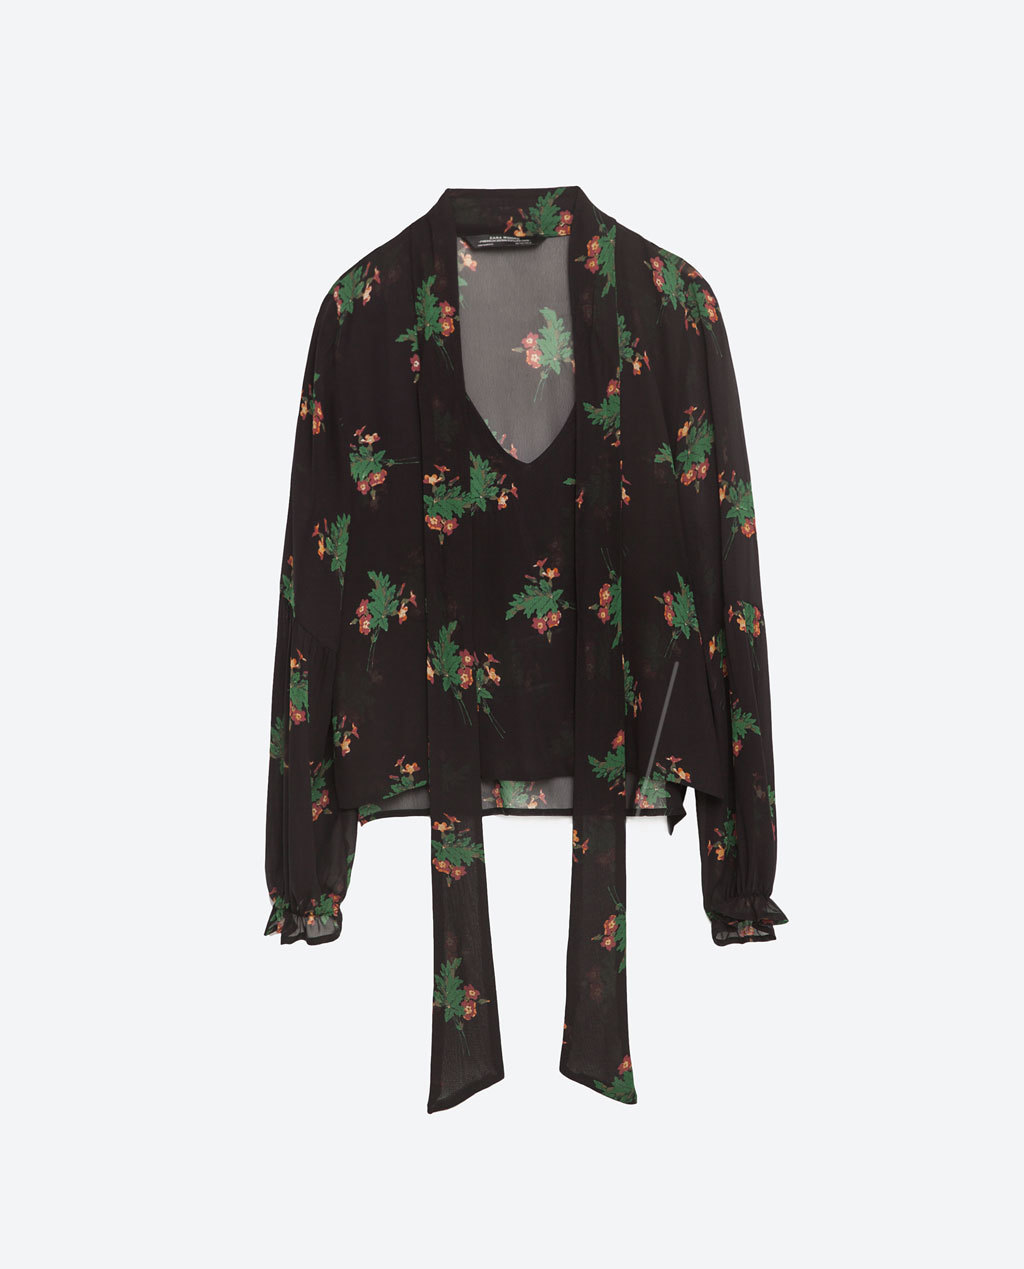 Floral Print Blouse - neckline: pussy bow; style: blouse; secondary colour: emerald green; predominant colour: black; occasions: casual; length: standard; fibres: viscose/rayon - 100%; fit: body skimming; sleeve length: long sleeve; sleeve style: standard; texture group: sheer fabrics/chiffon/organza etc.; hip detail: ruffles/tiers/tie detail at hip; pattern type: fabric; pattern: florals; multicoloured: multicoloured; season: s/s 2016